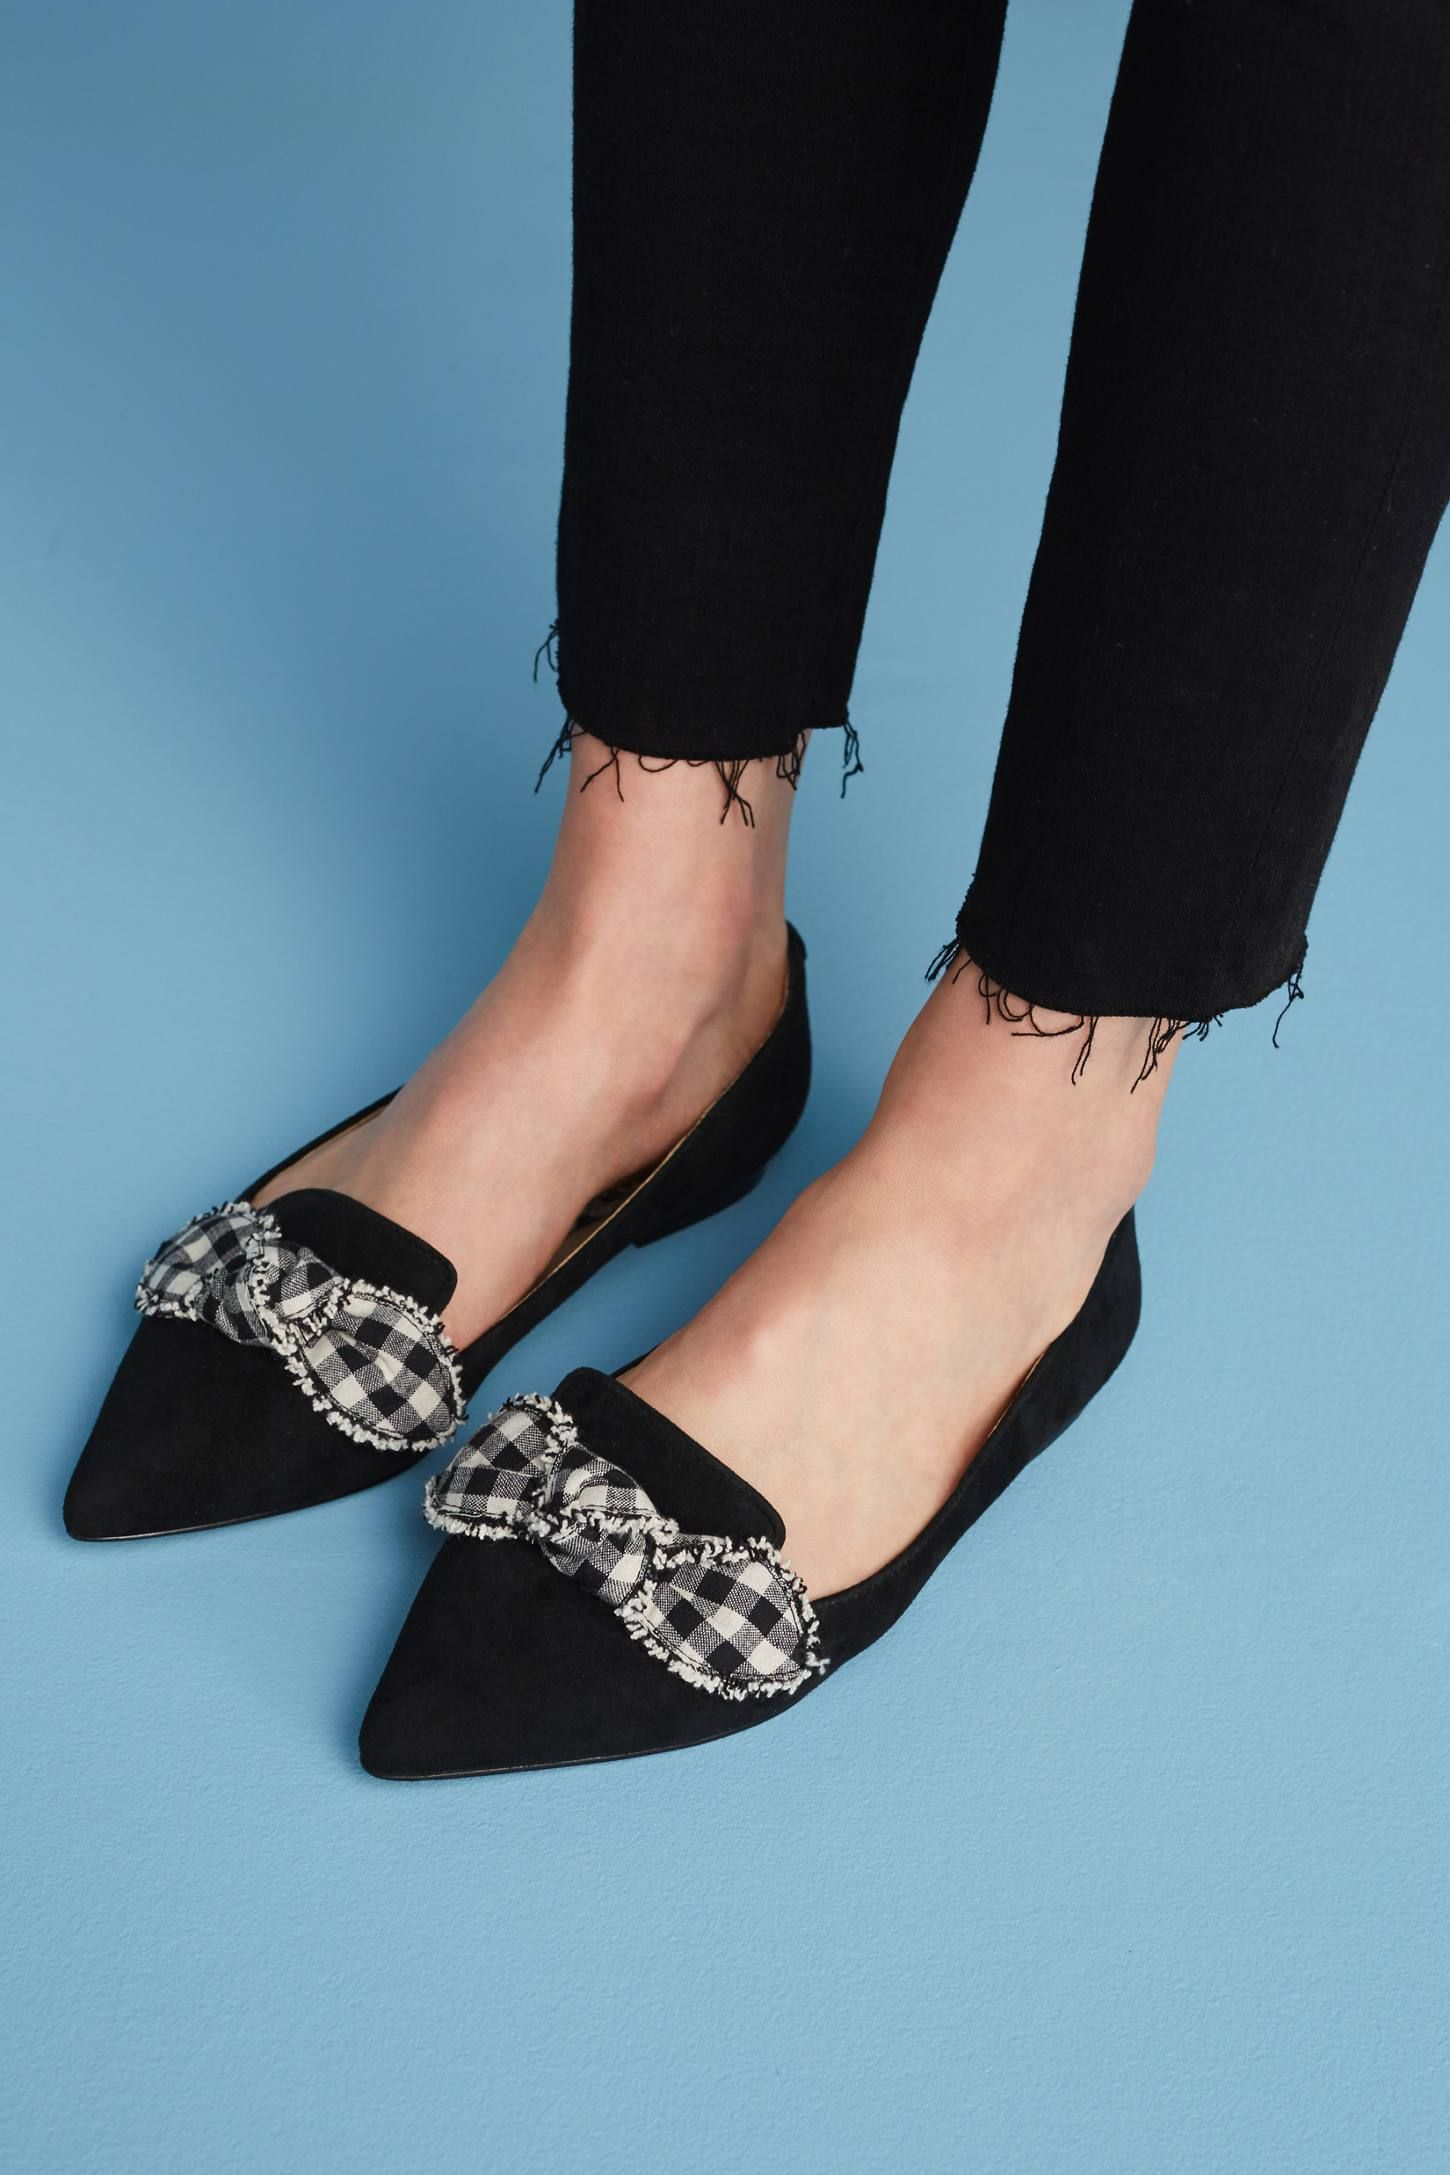 78a21bfee Shop the Sam Edelman Rochester Ballet Flats and more Anthropologie at  Anthropologie today. Read customer reviews